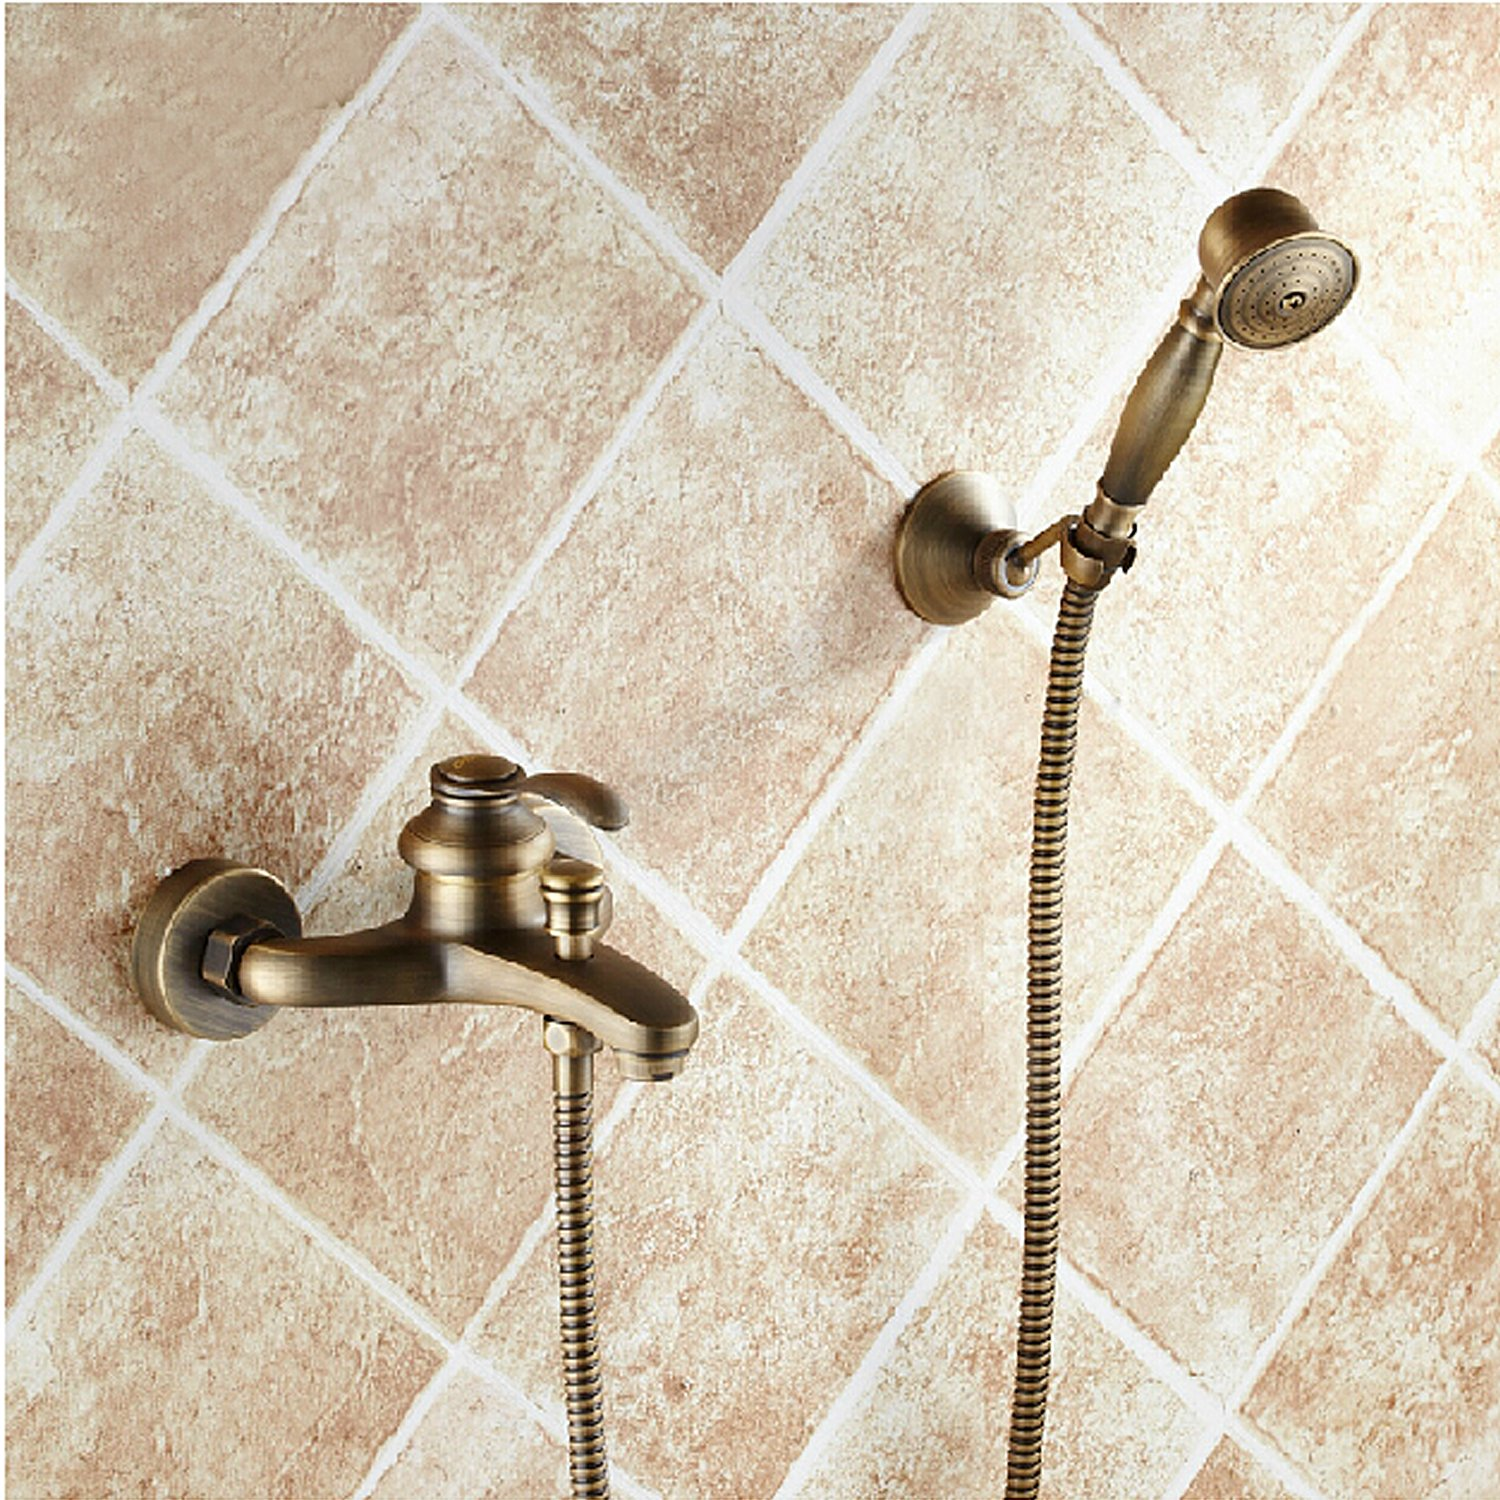 LightInTheBox Bathroom Wall Mounted Antique Brass Bathtub Faucet with Hand Shower Set cheap